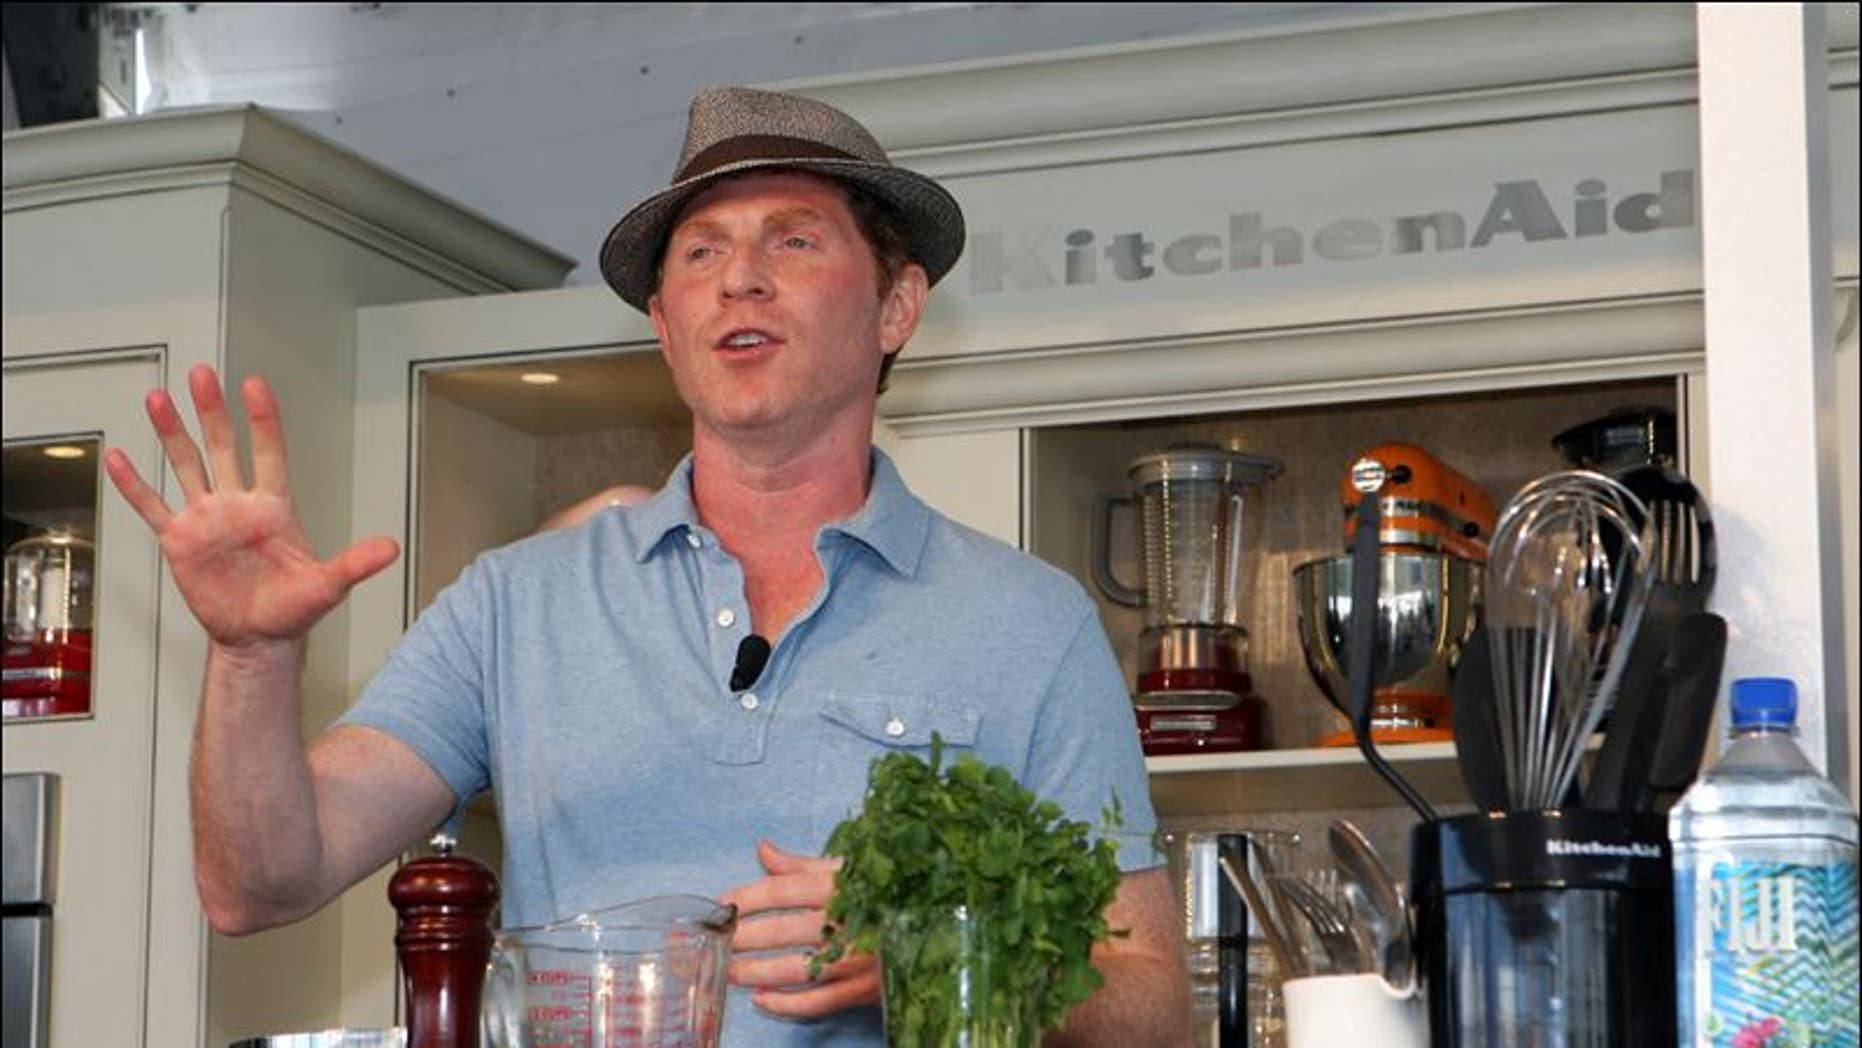 Food Network star Bobby Flay performs an outdoor kitchen demo at the South Beach Wine & Food Festival in Miami.